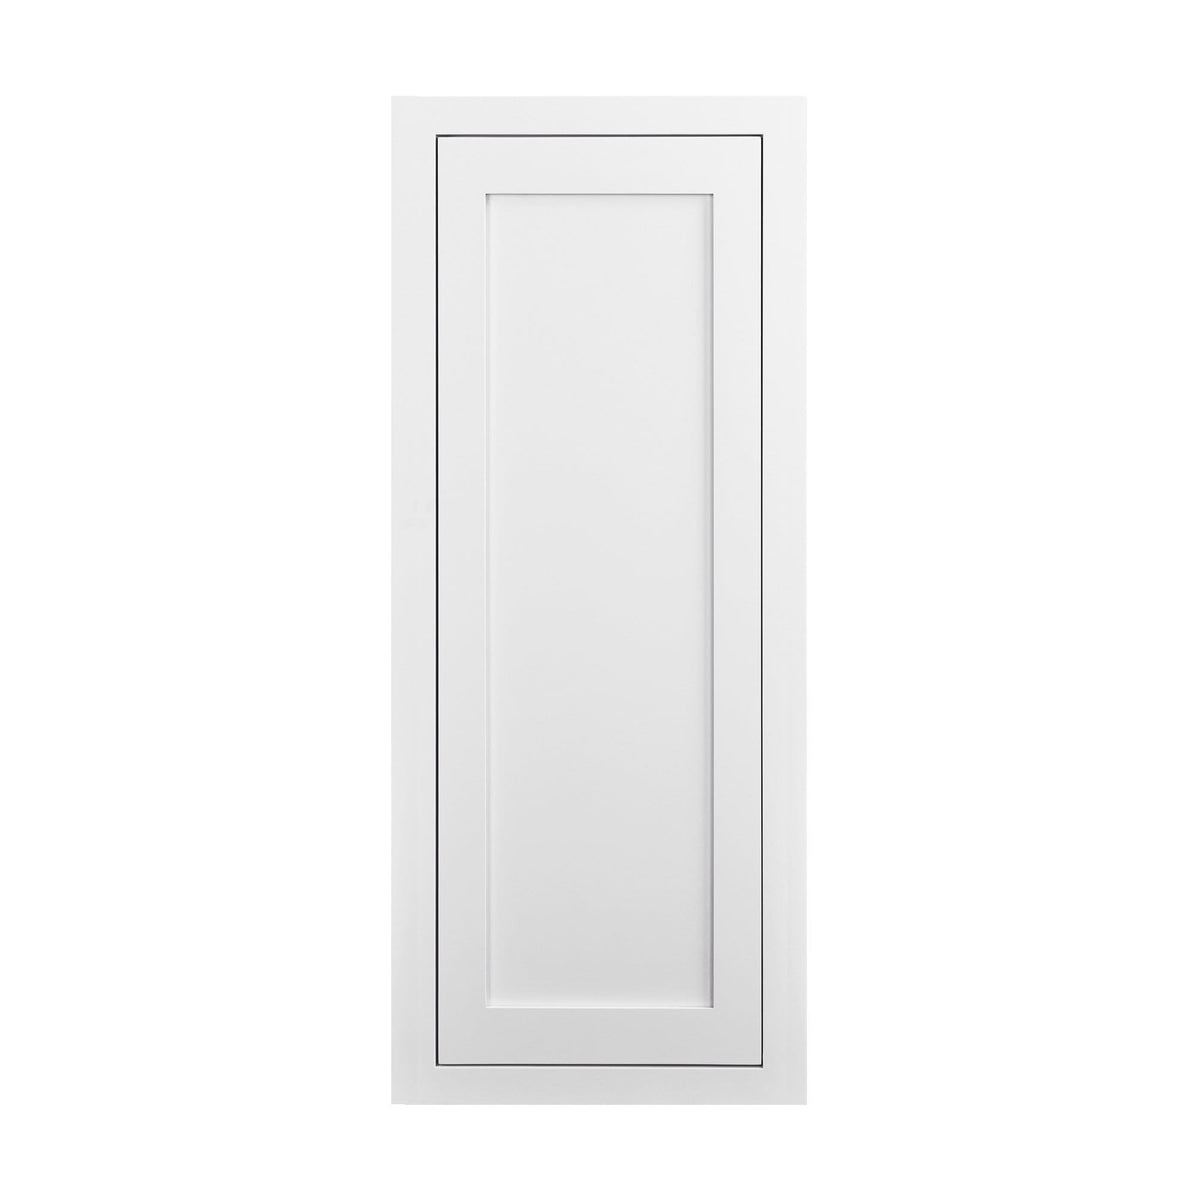 "39"" Tall Snow White Inset Shaker Wall Cabinet - Single Door 12"", 15"", 18"" & 21"" - White Shaker Kitchen Cabinets"